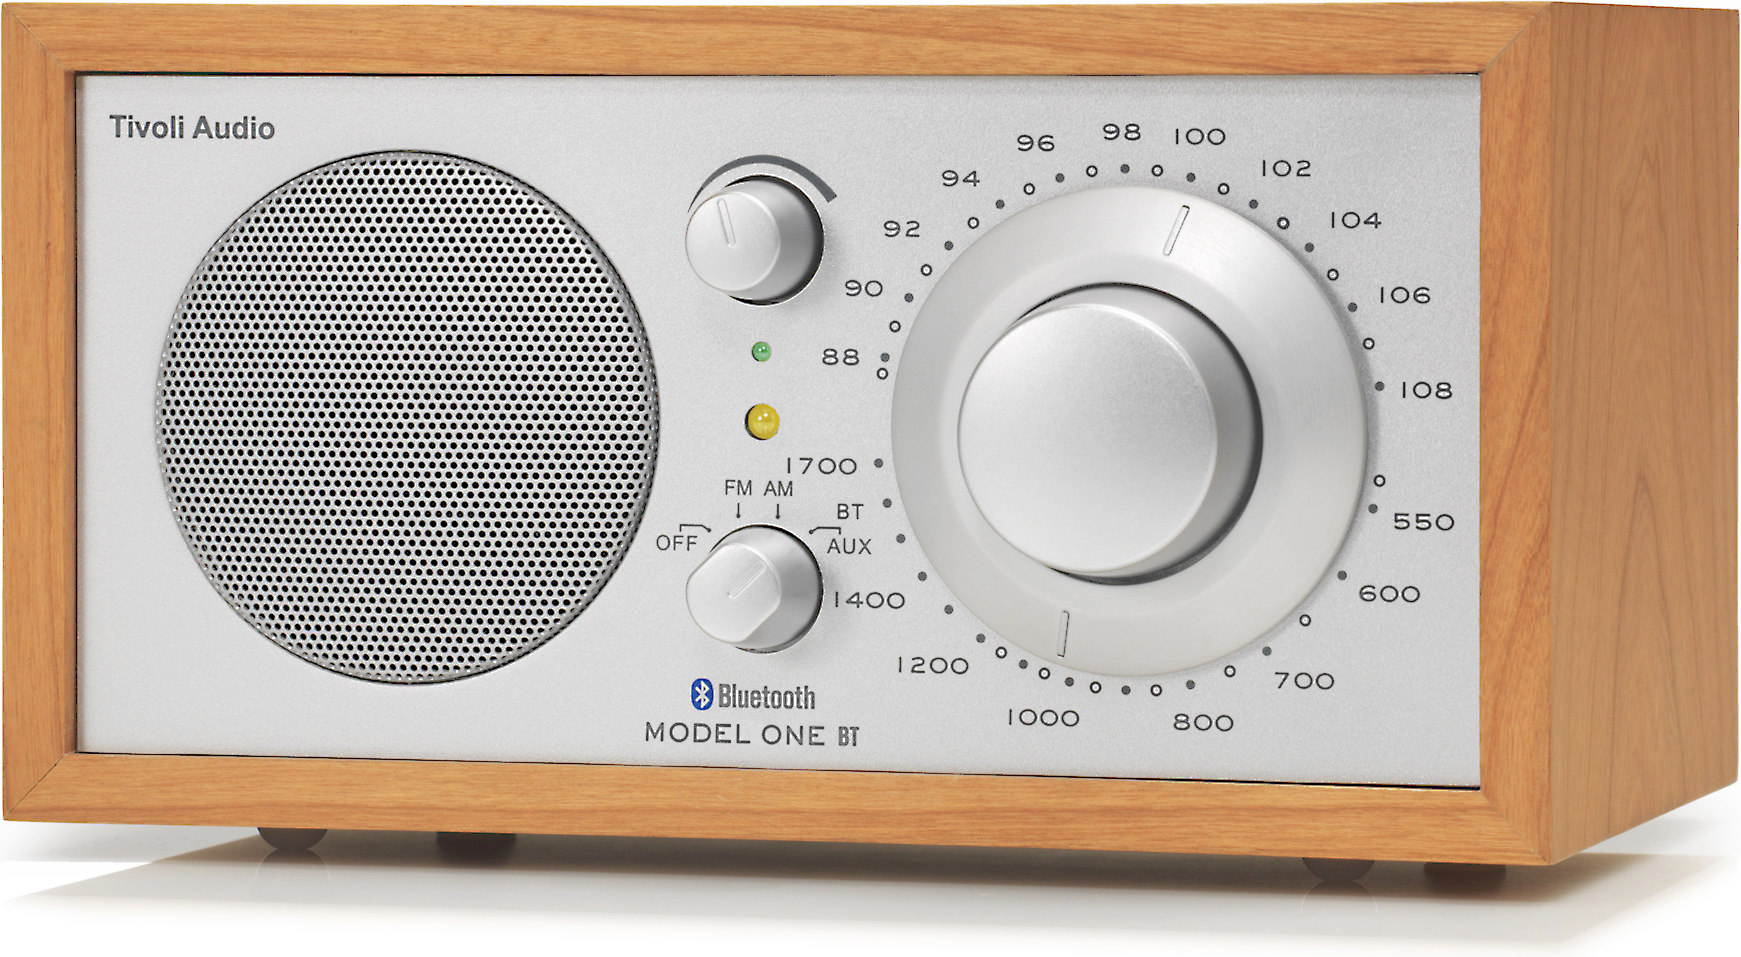 Tivoli Radio Sale Tivoli Audio Model One Bt Cherry Silver